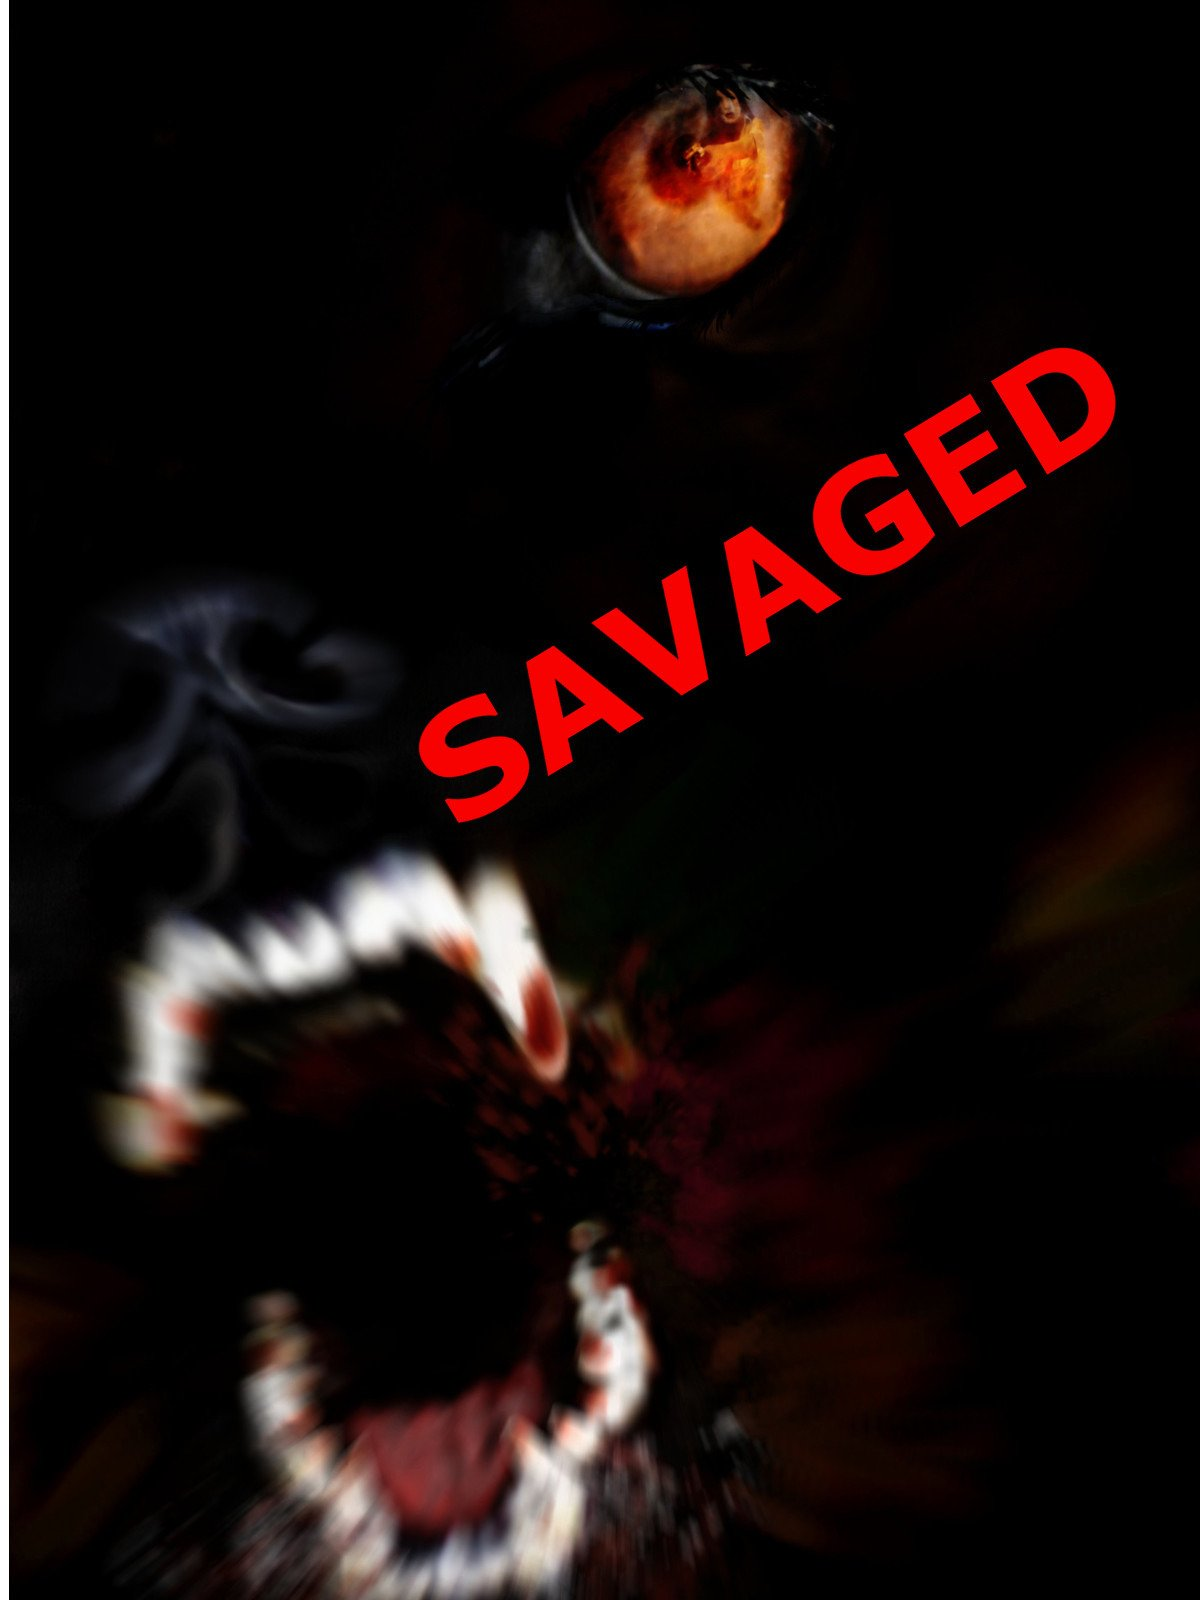 Savaged on Amazon Prime Video UK